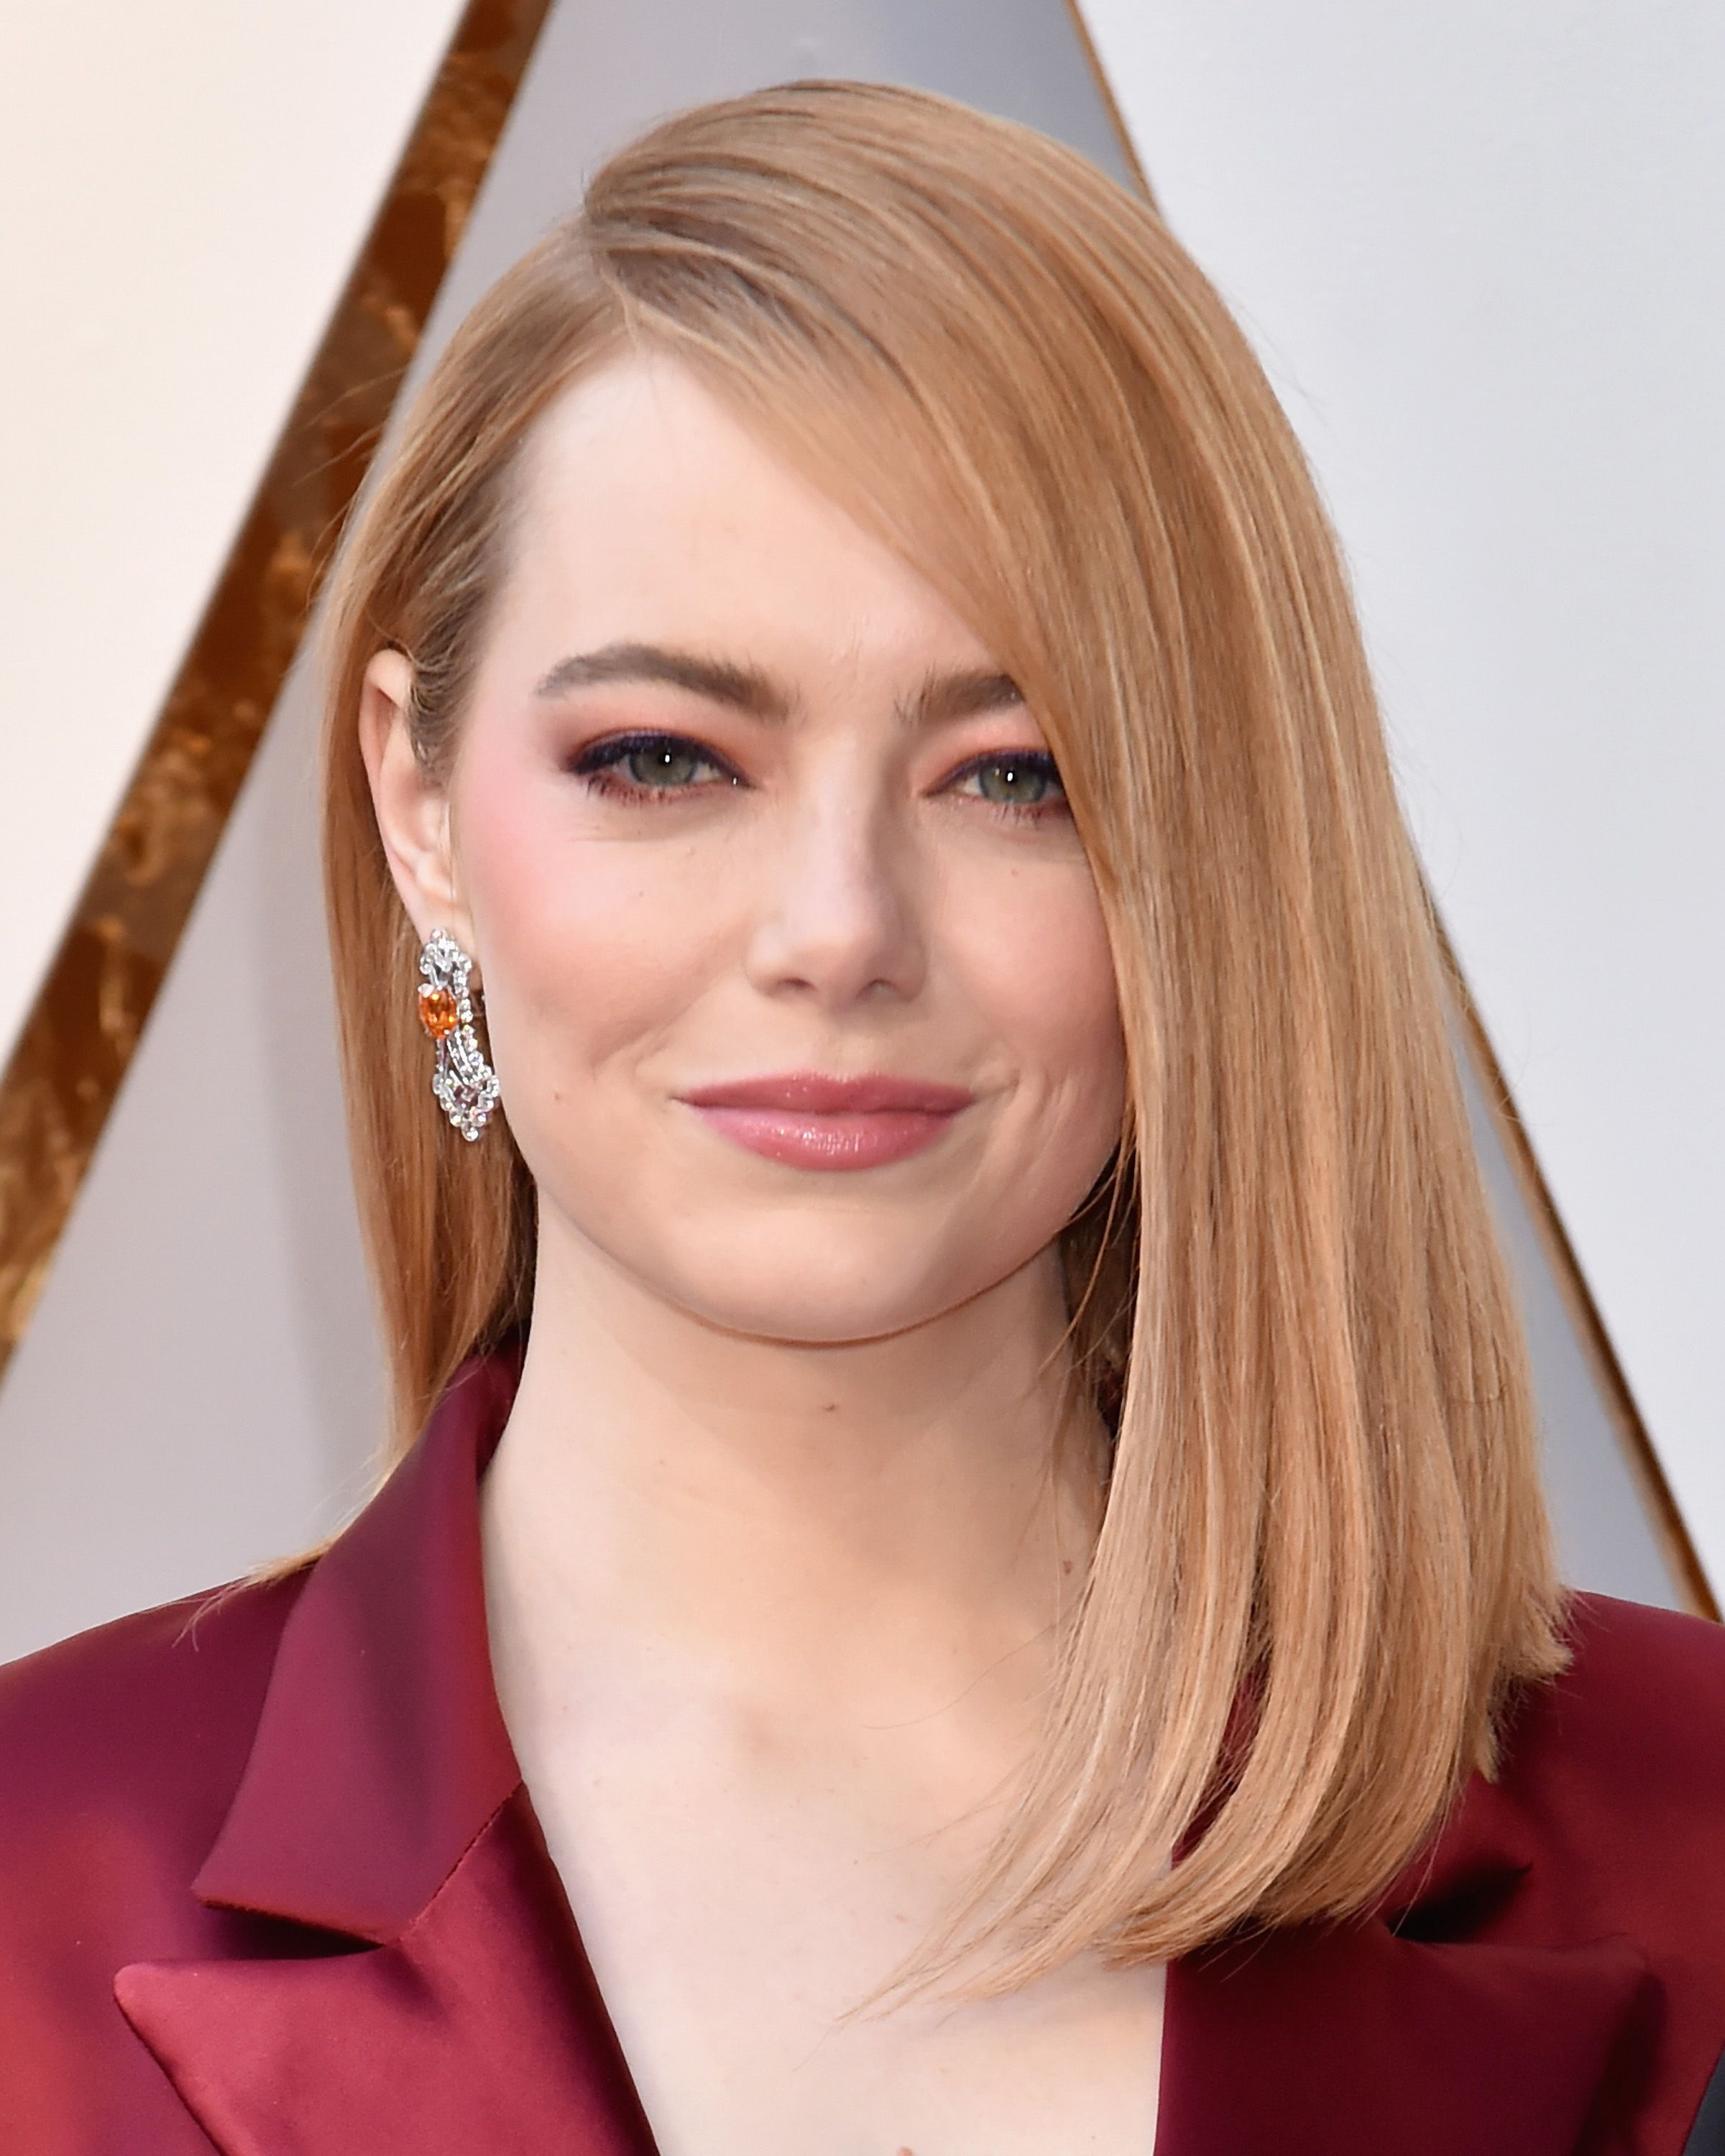 Emma Stone HD Image, Biography, Movies, Photos & Songs